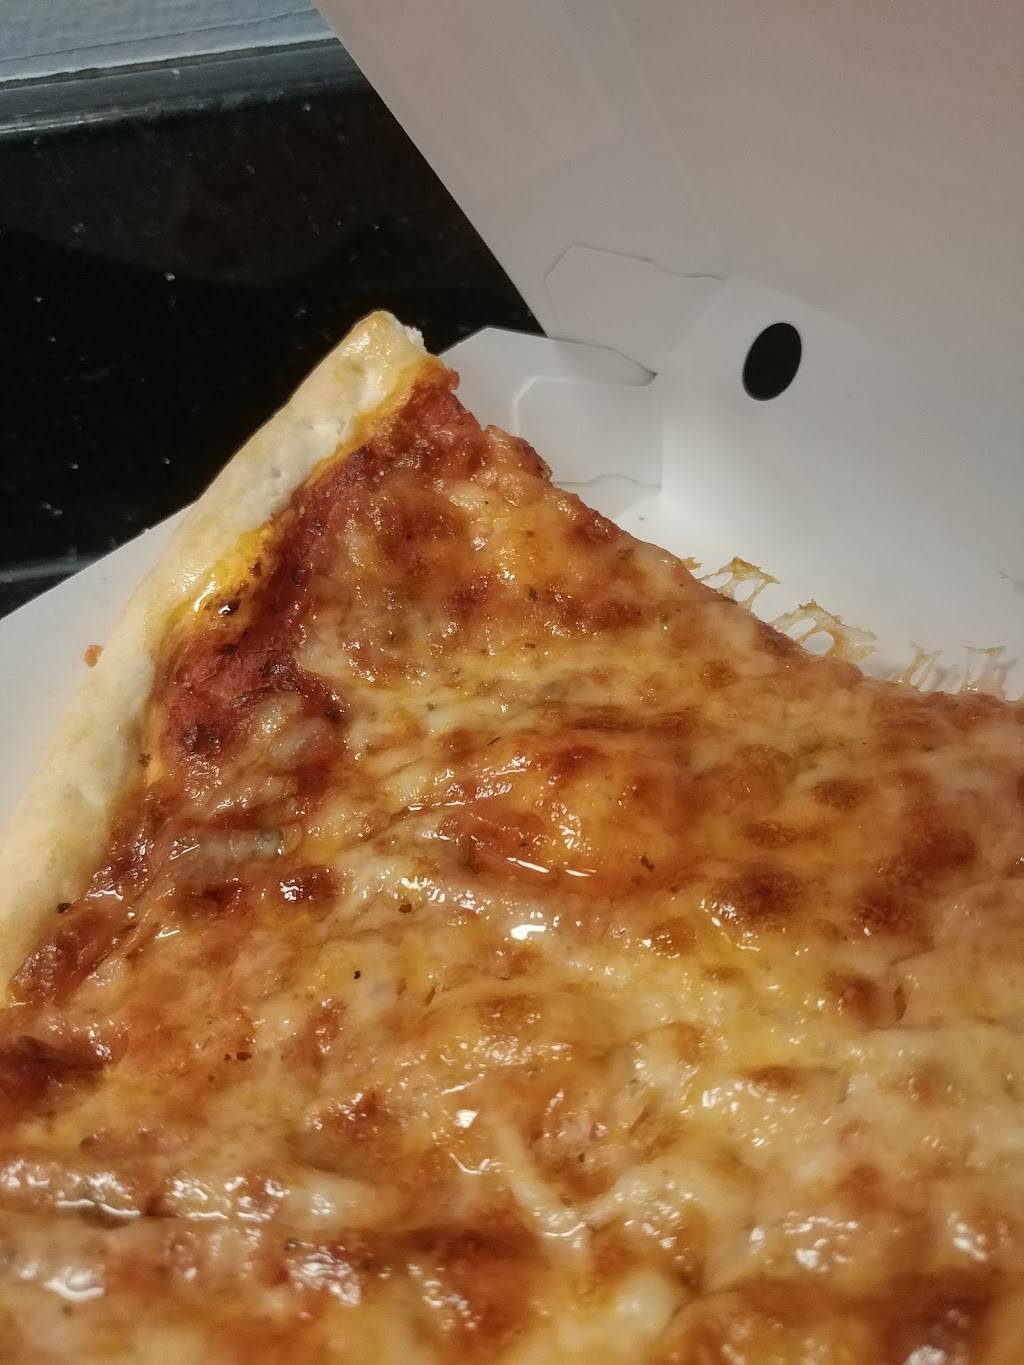 Pizanoz Pizza & Catering   restaurant   1137 Weiland Rd, Buffalo Grove, IL 60089, USA   8476343380 OR +1 847-634-3380